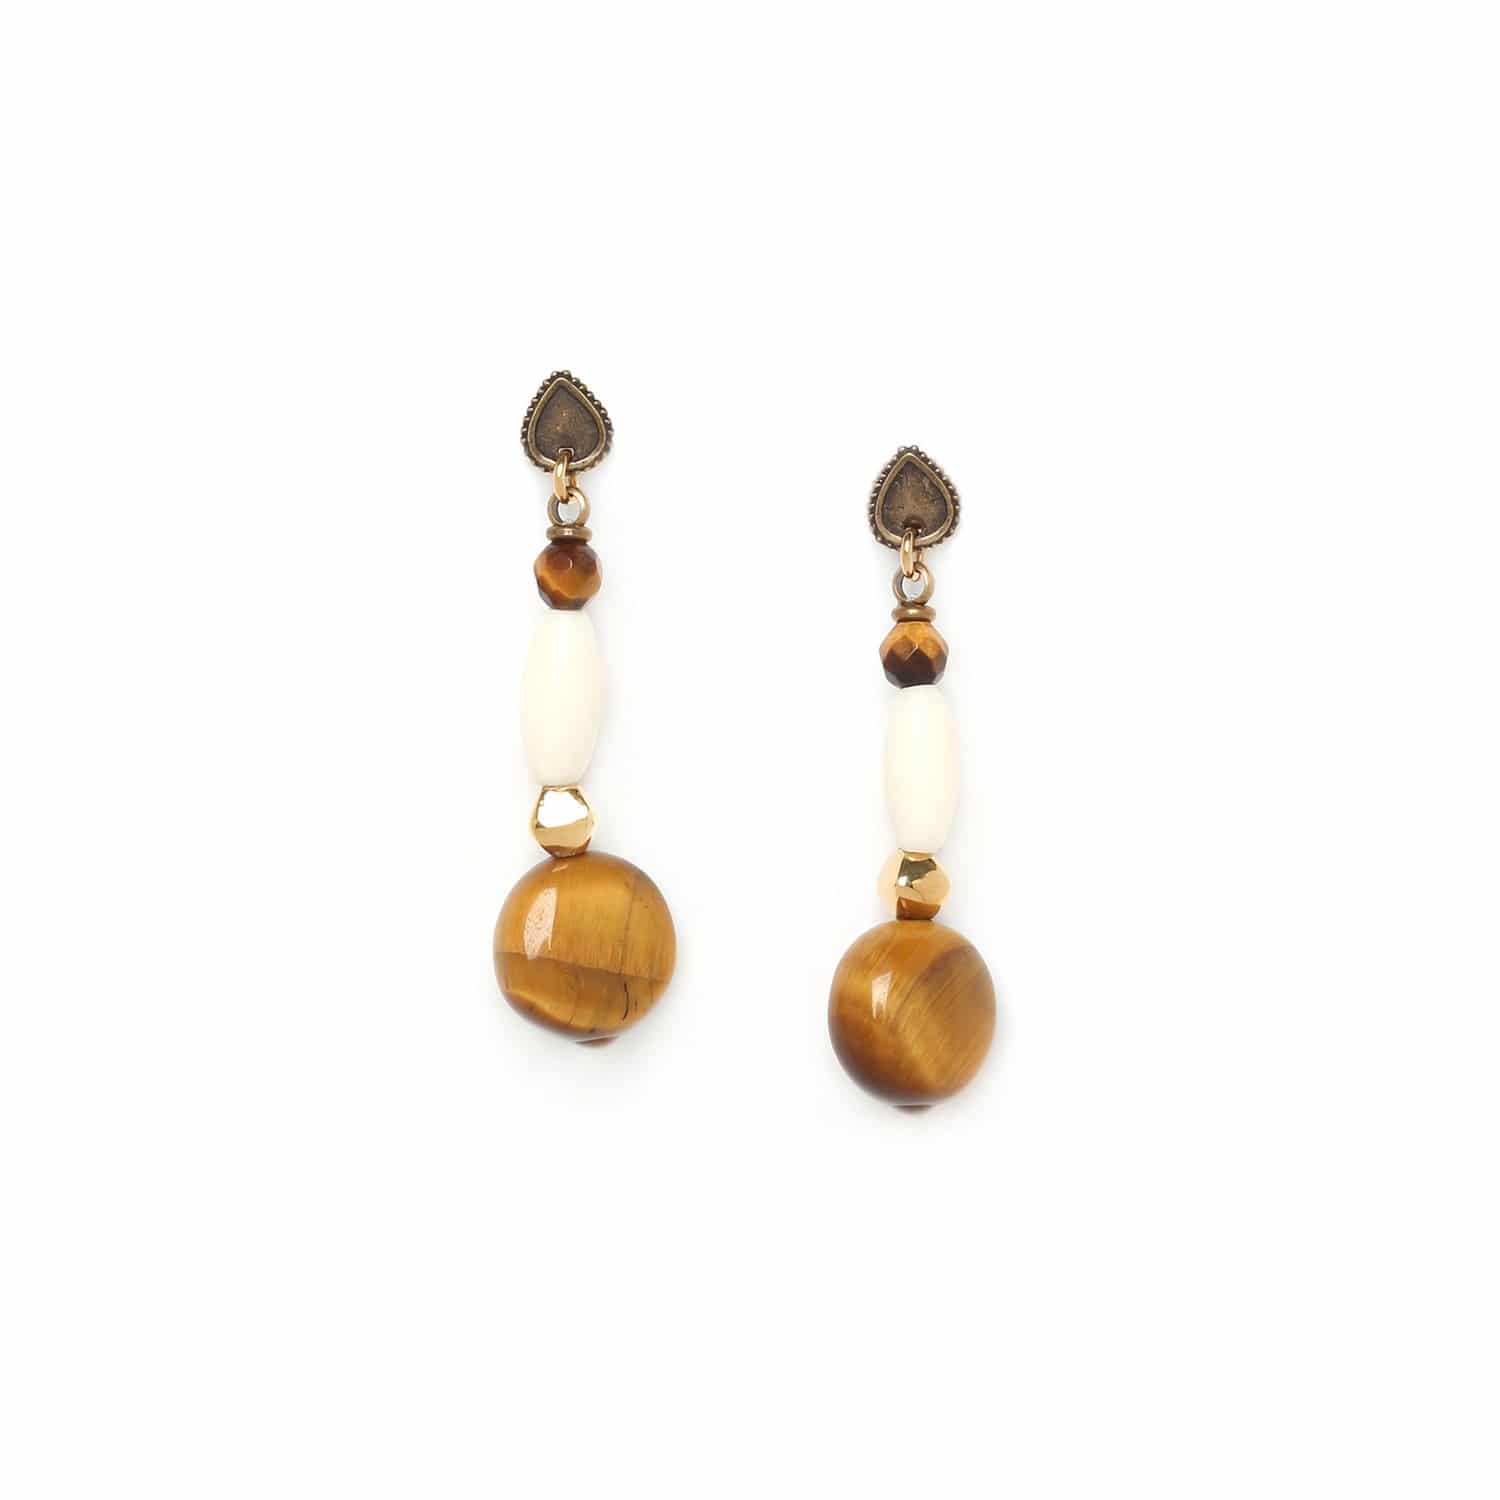 VARANASI long earrings